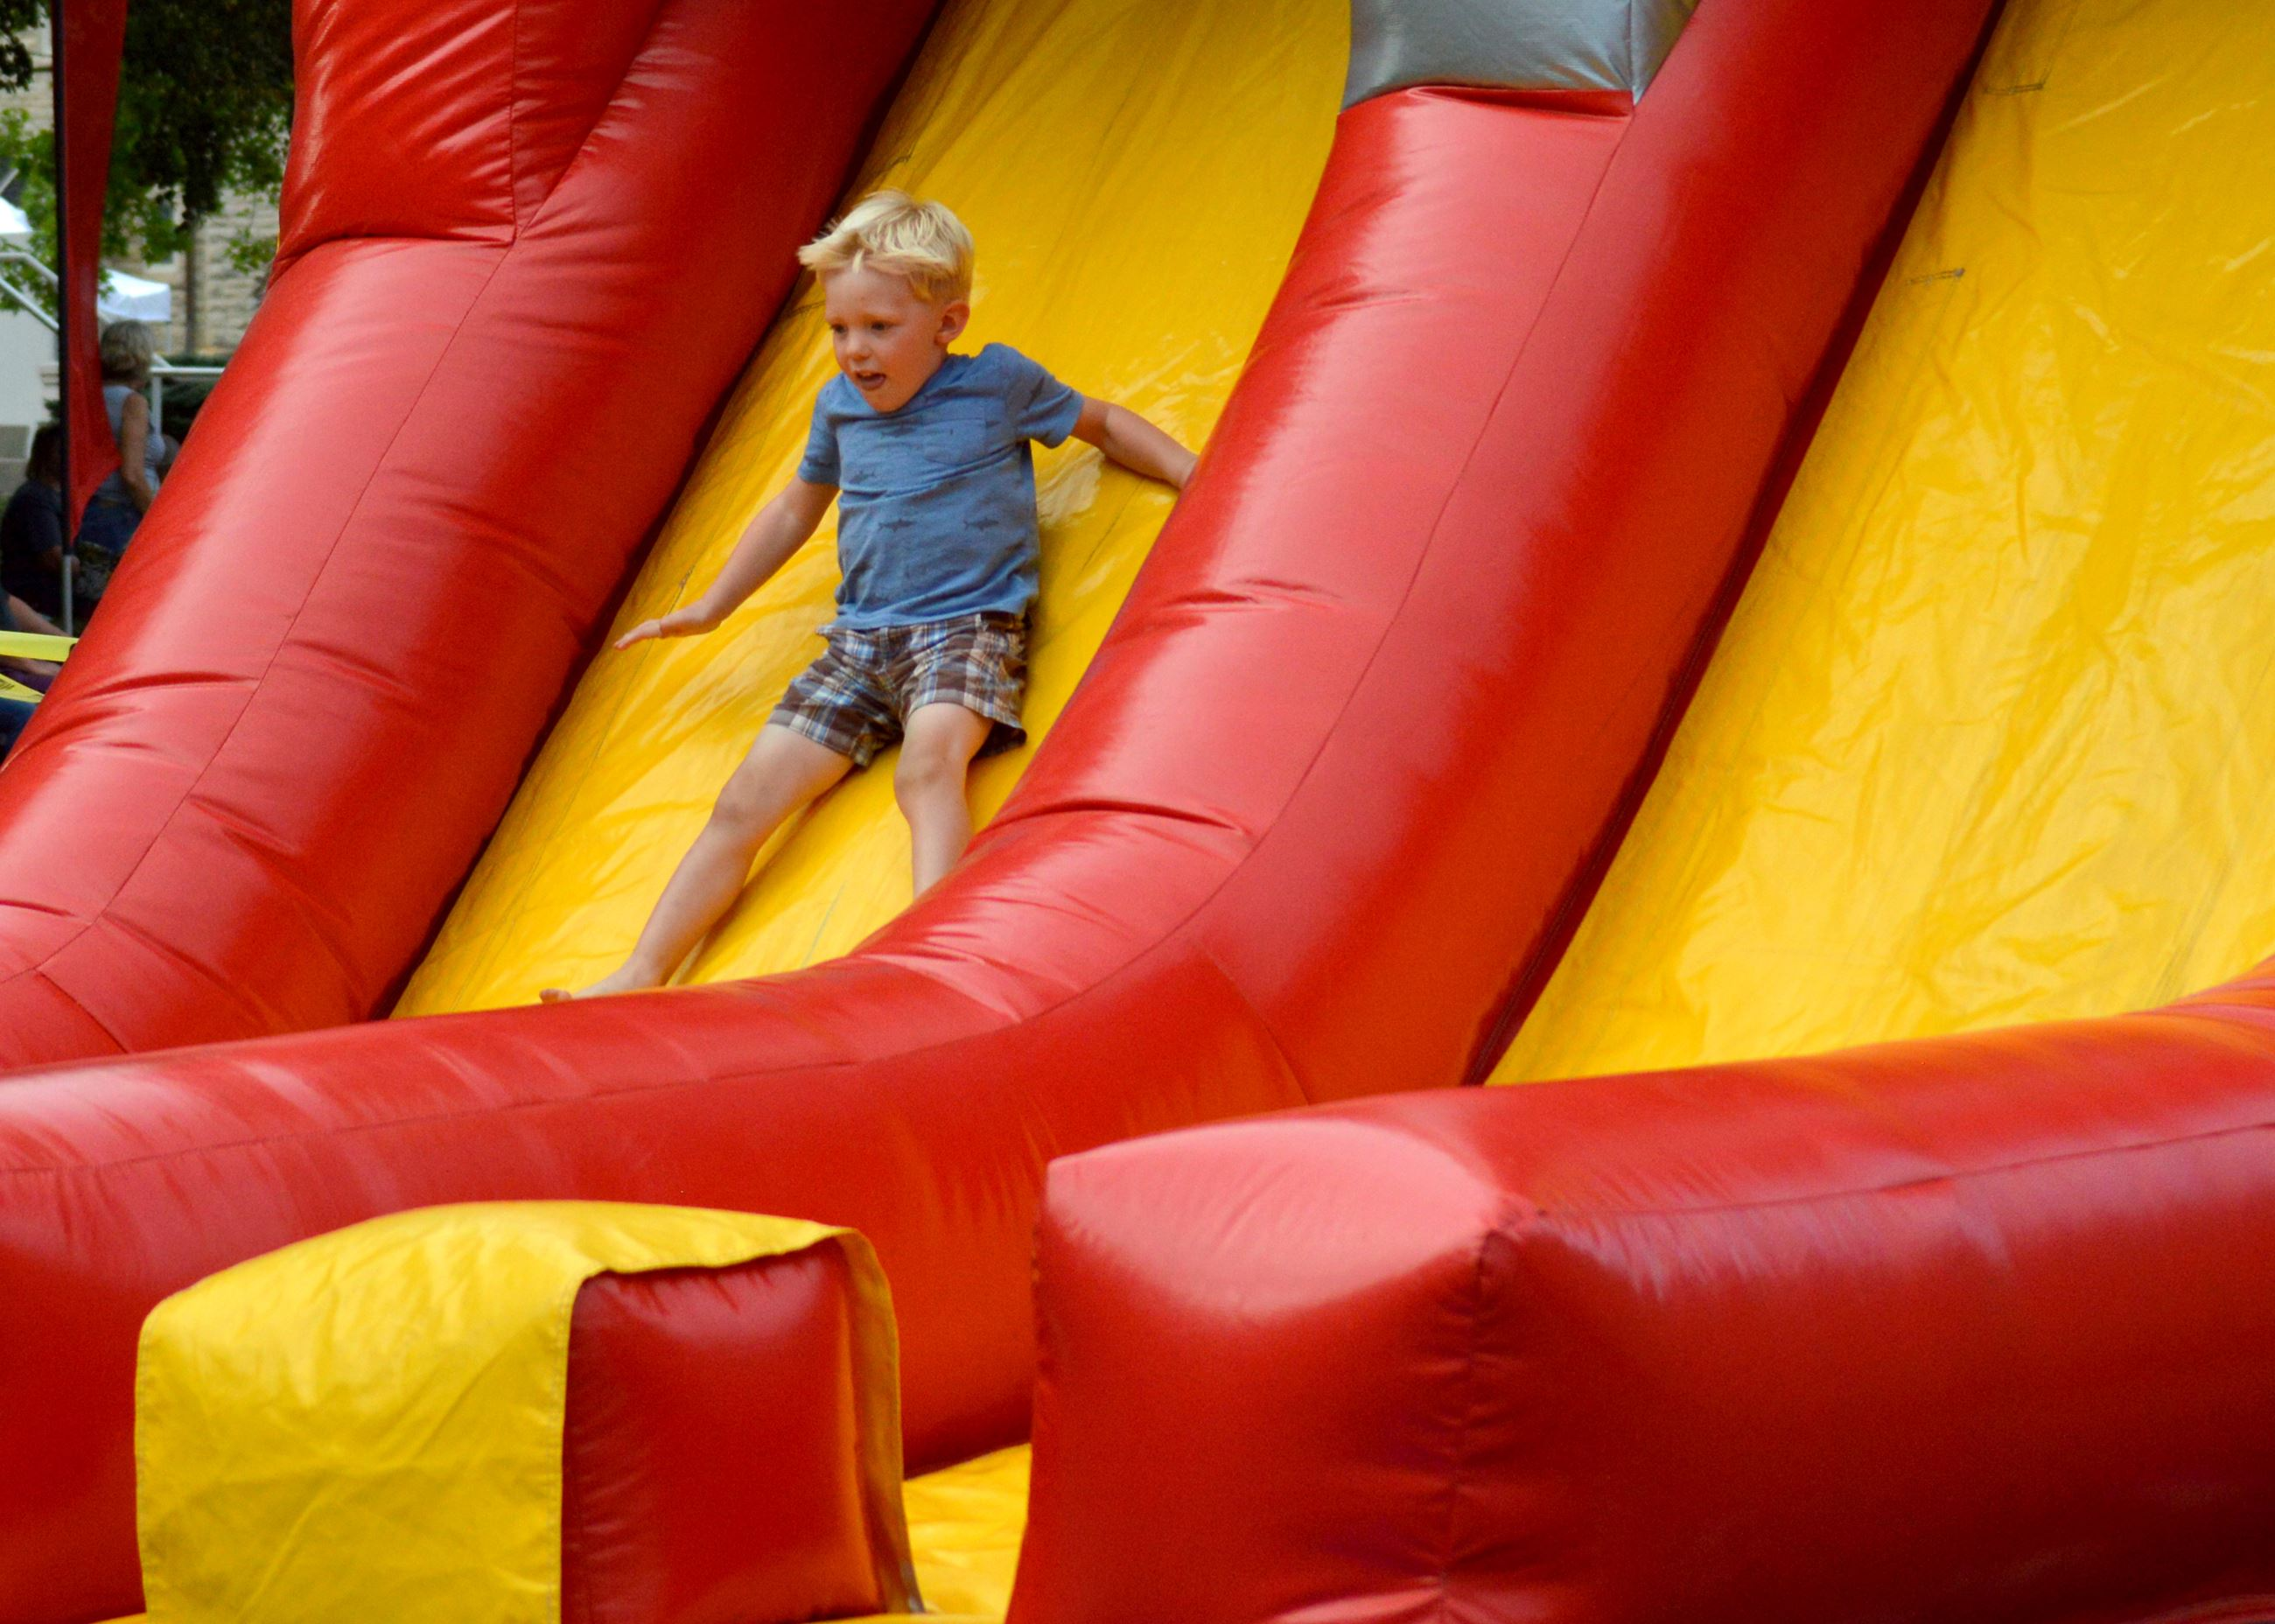 Boy sliding down slide at end of obstacle course